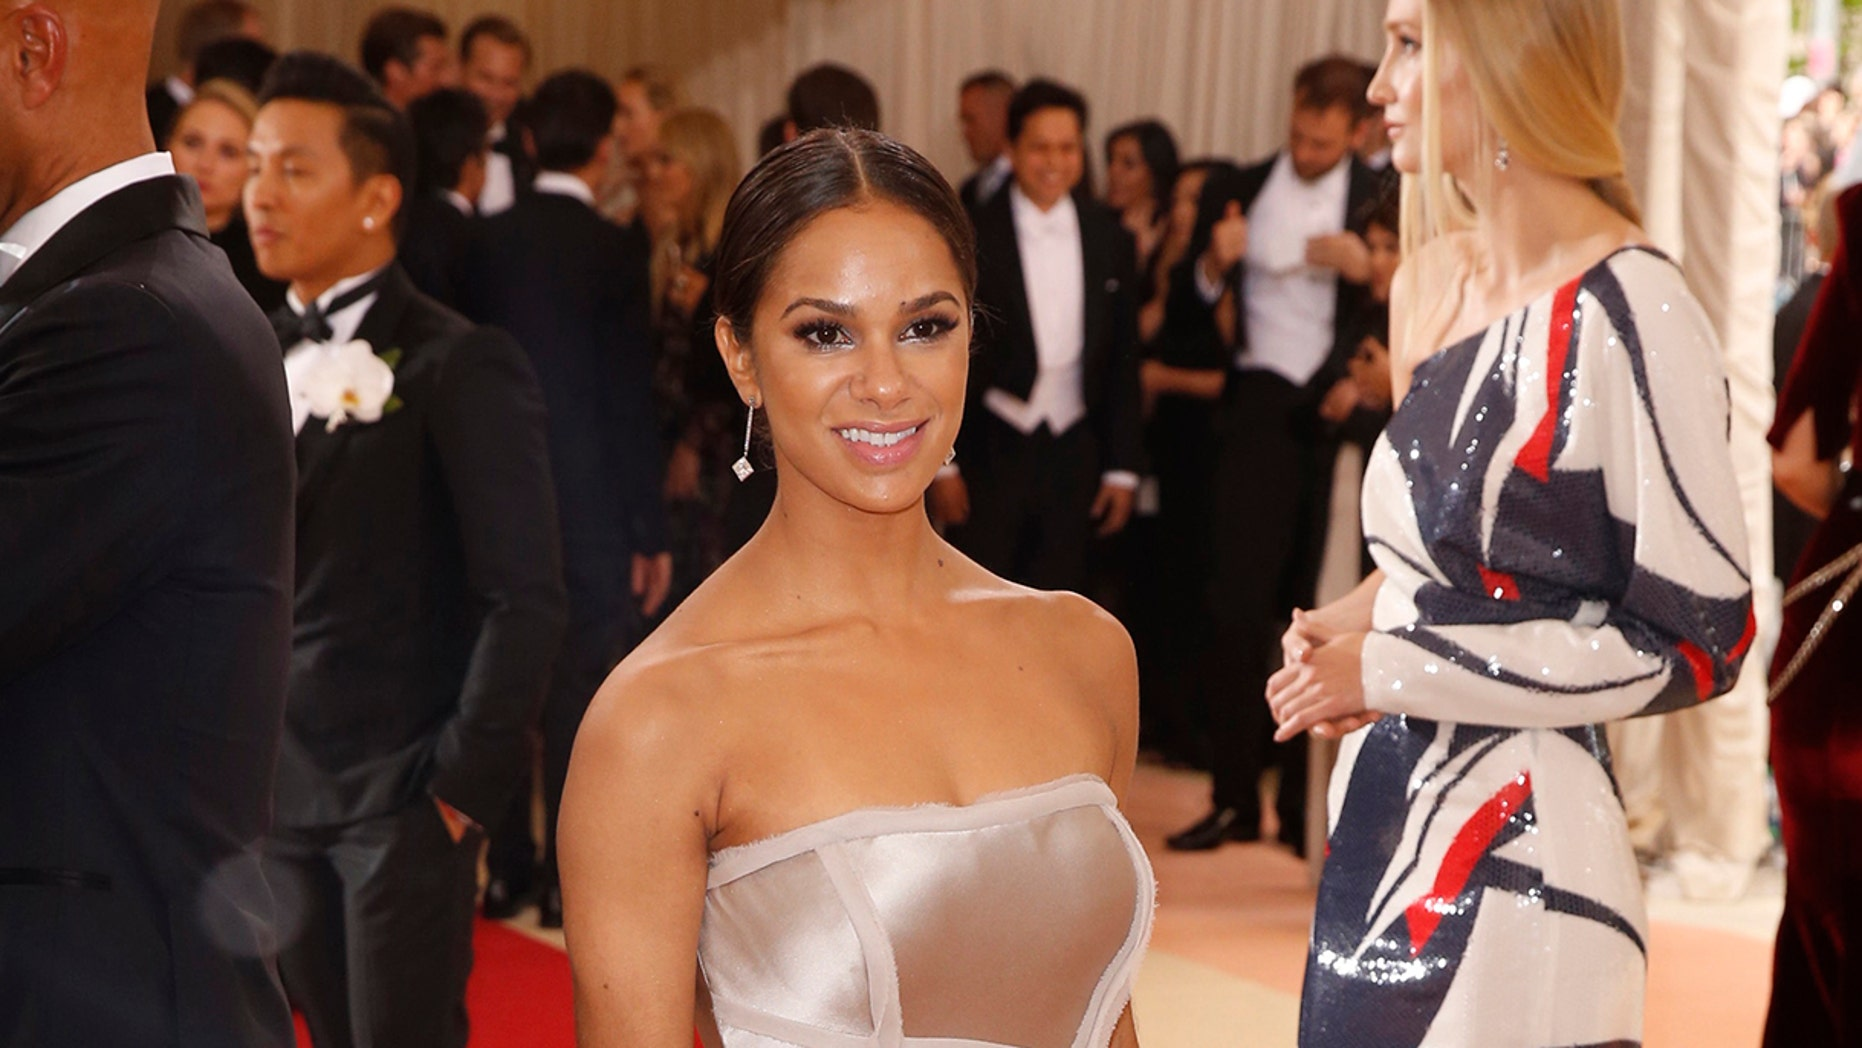 """Prima ballerina Misty Copeland arrives at the Metropolitan Museum of Art Costume Institute Gala (Met Gala) to celebrate the opening of """"Manus x Machina: Fashion in an Age of Technology"""" in Manhattan borough of New York, May 2, 2016."""